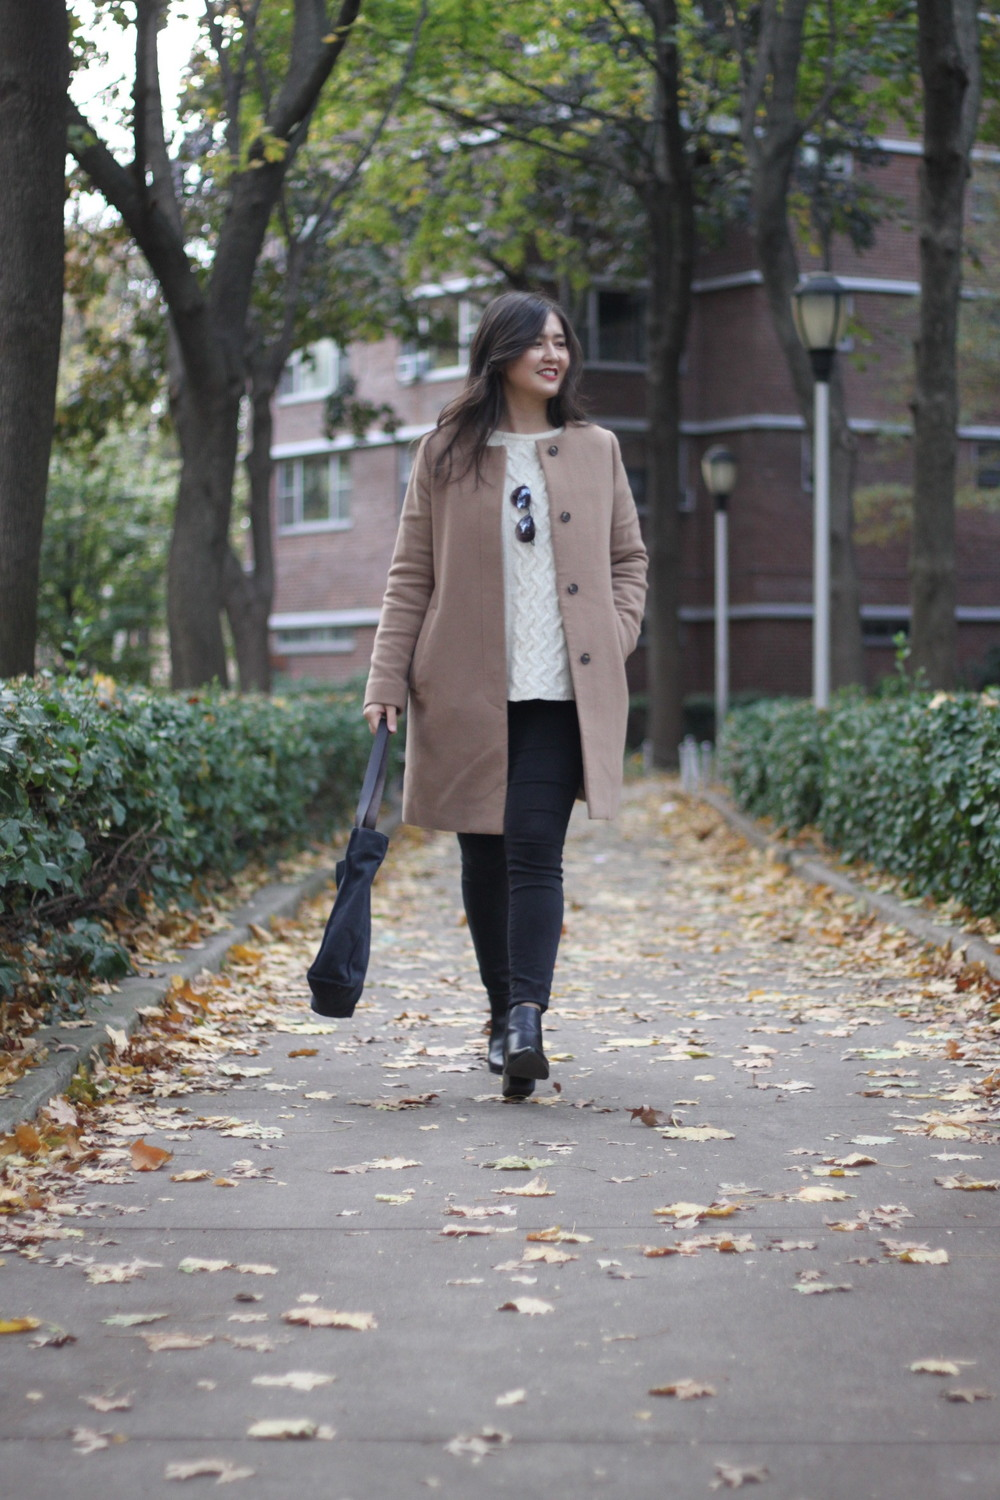 Coat: Uniqlo. Sweater: Zara (similar here). Jeans: American Eagle. Boots: ASOS.